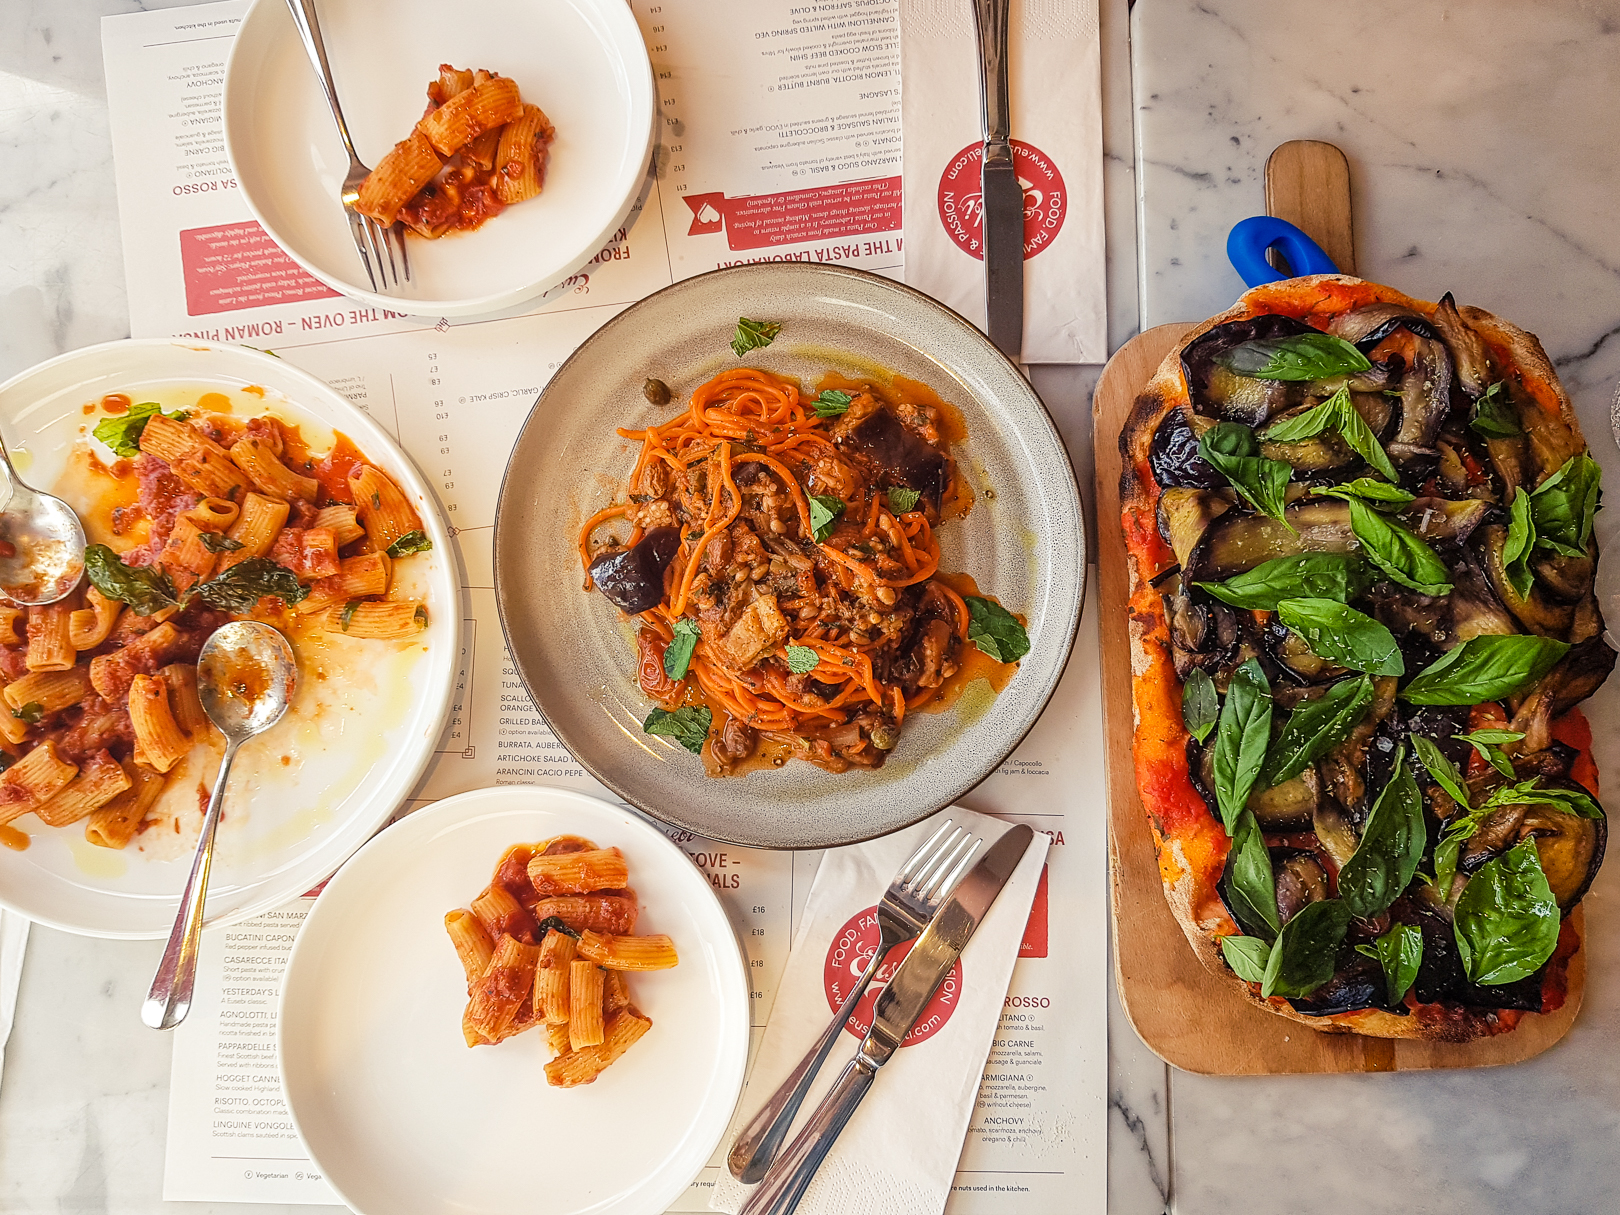 A spread of vegan Italian dishes at Eusebi Deli in Glasgow.